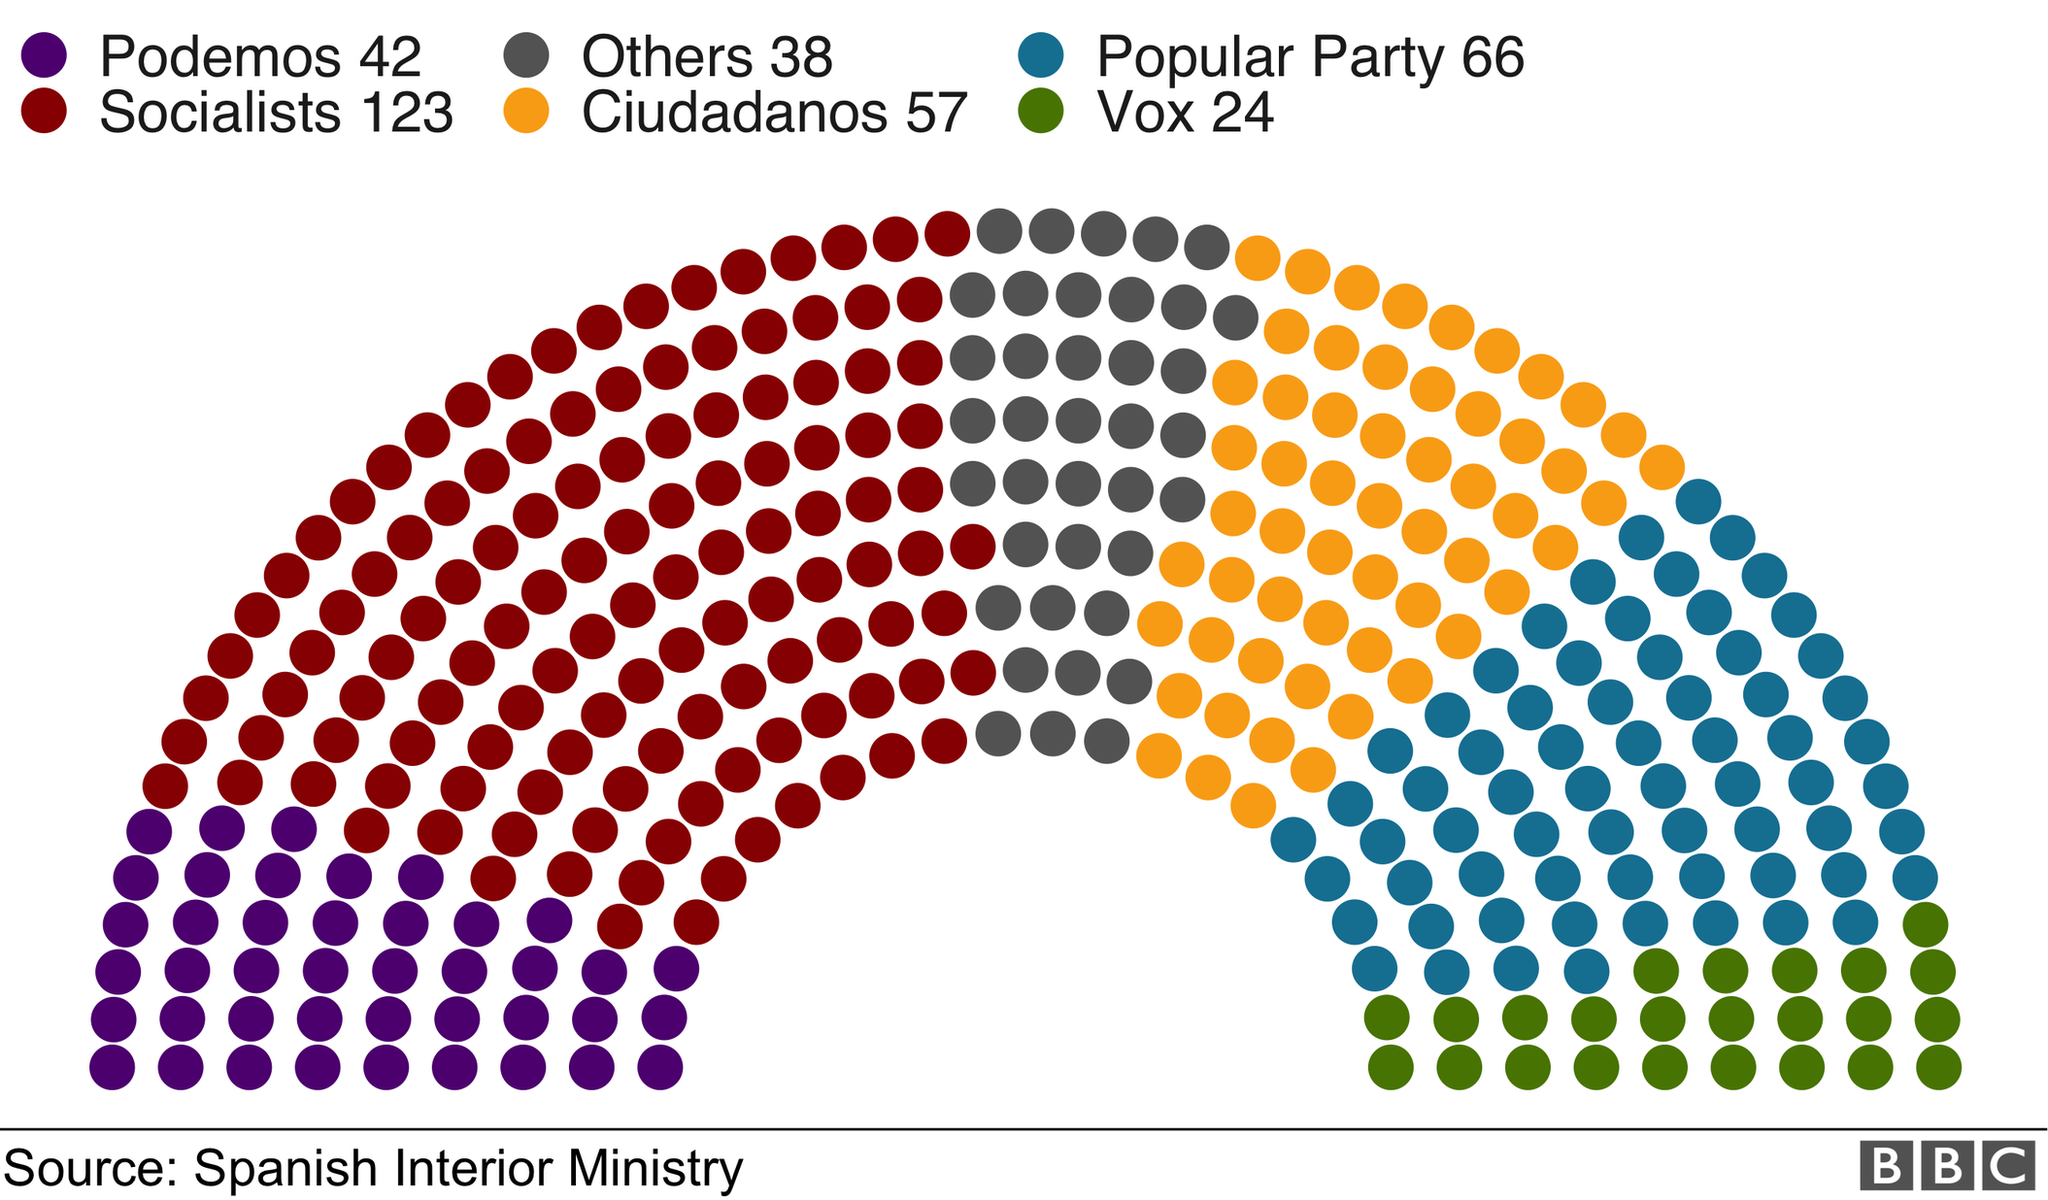 A graphic shows the number of seats won in parliament in a colour-coded hemicycle format: Socialists 123, Popular Party 66, Ciudadanos 57, Podemos 42, Vox 24, Others 38